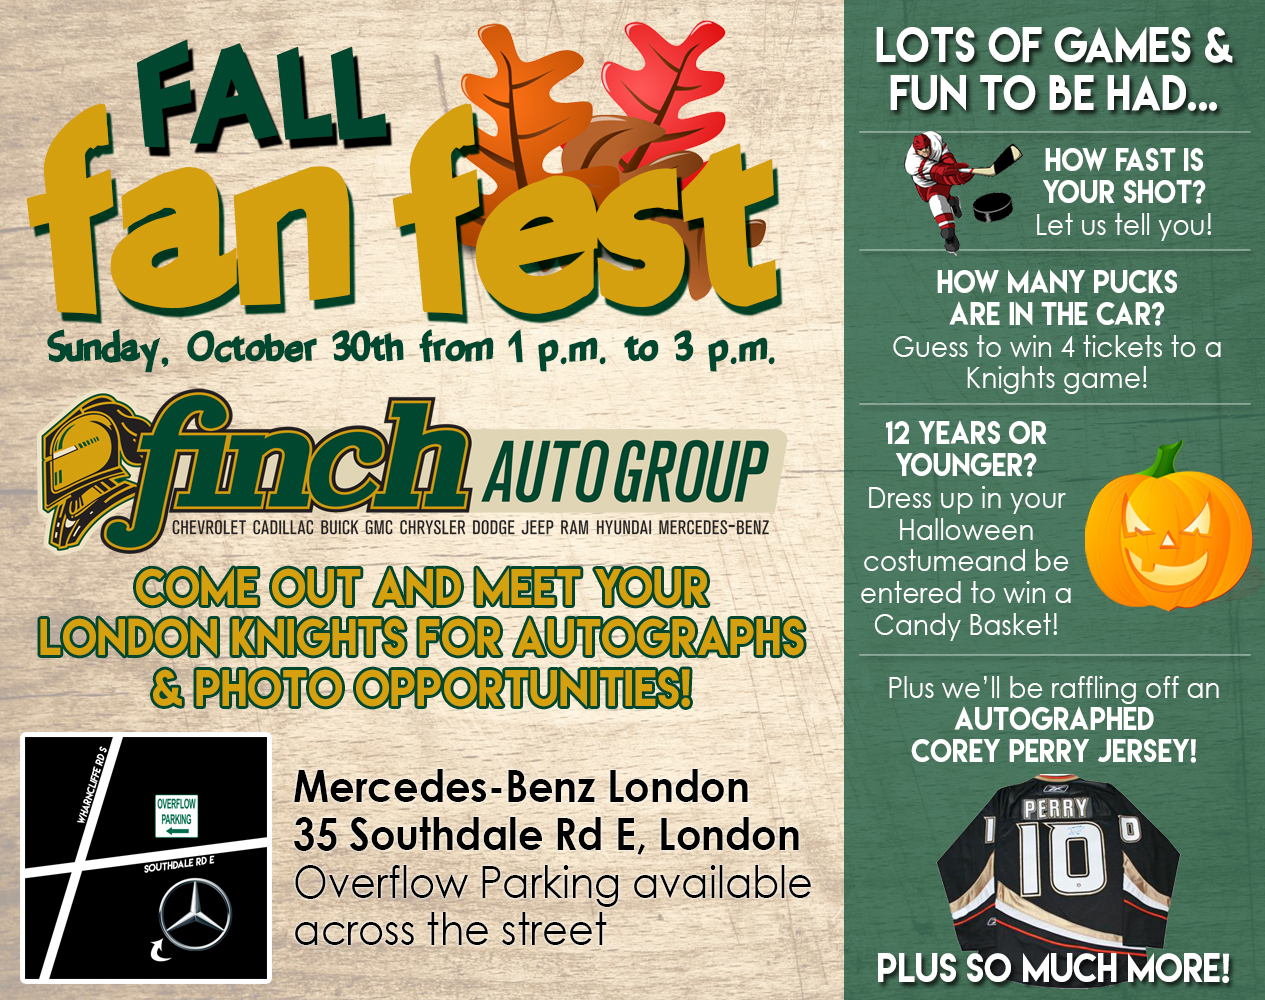 Party with Finchy at the Finch Auto Group Fall Fan Fest and meet your favourite London Knights players on October 30th from 1pm to 3pm